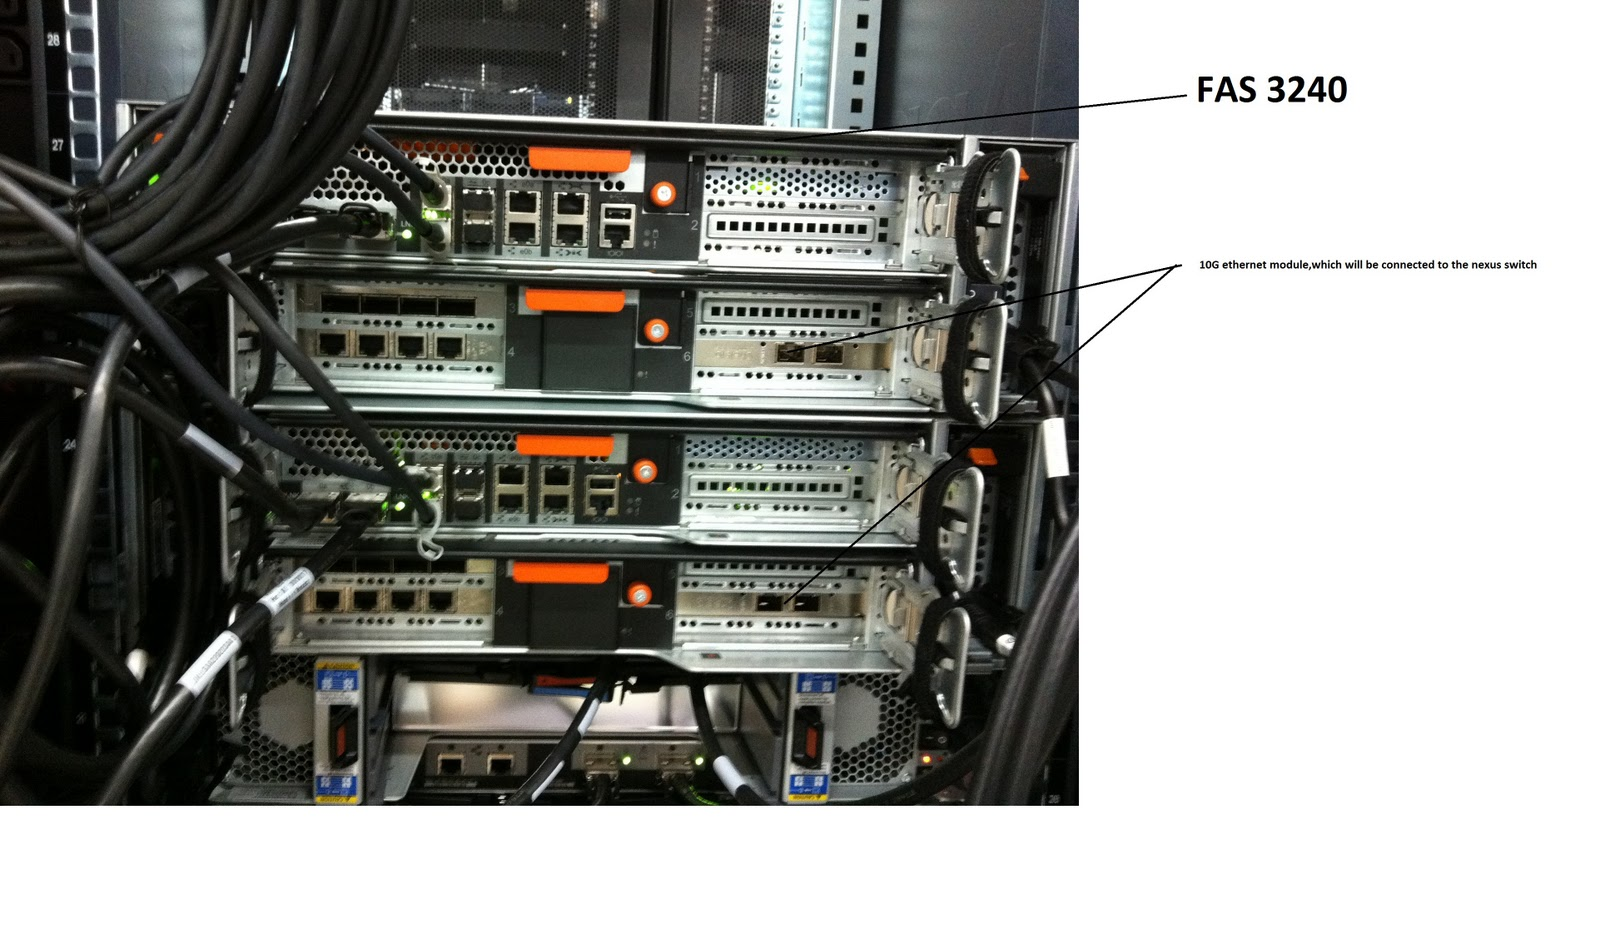 Jibby George Unix And Virtualization Blog Netapp Wiring Diagram Thursday December 29 2011